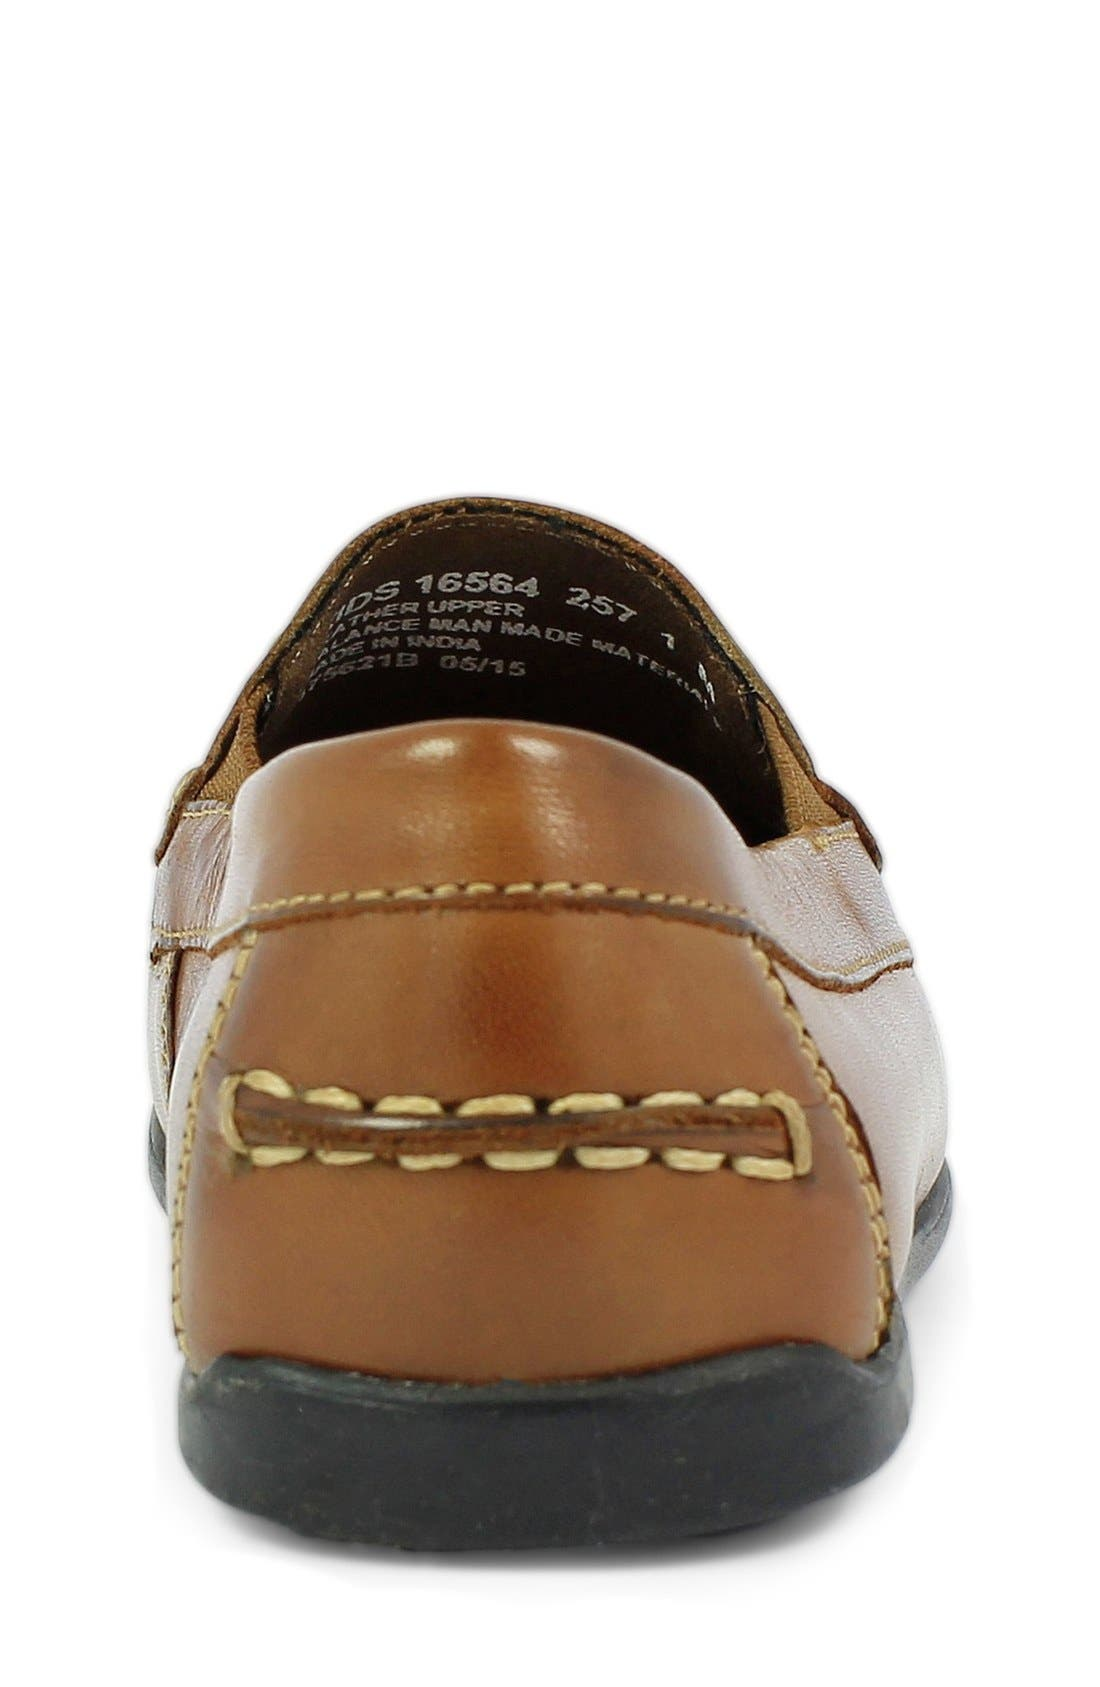 'Jasper - Venetian Jr.' Loafer,                             Alternate thumbnail 2, color,                             SADDLE TAN LEATHER